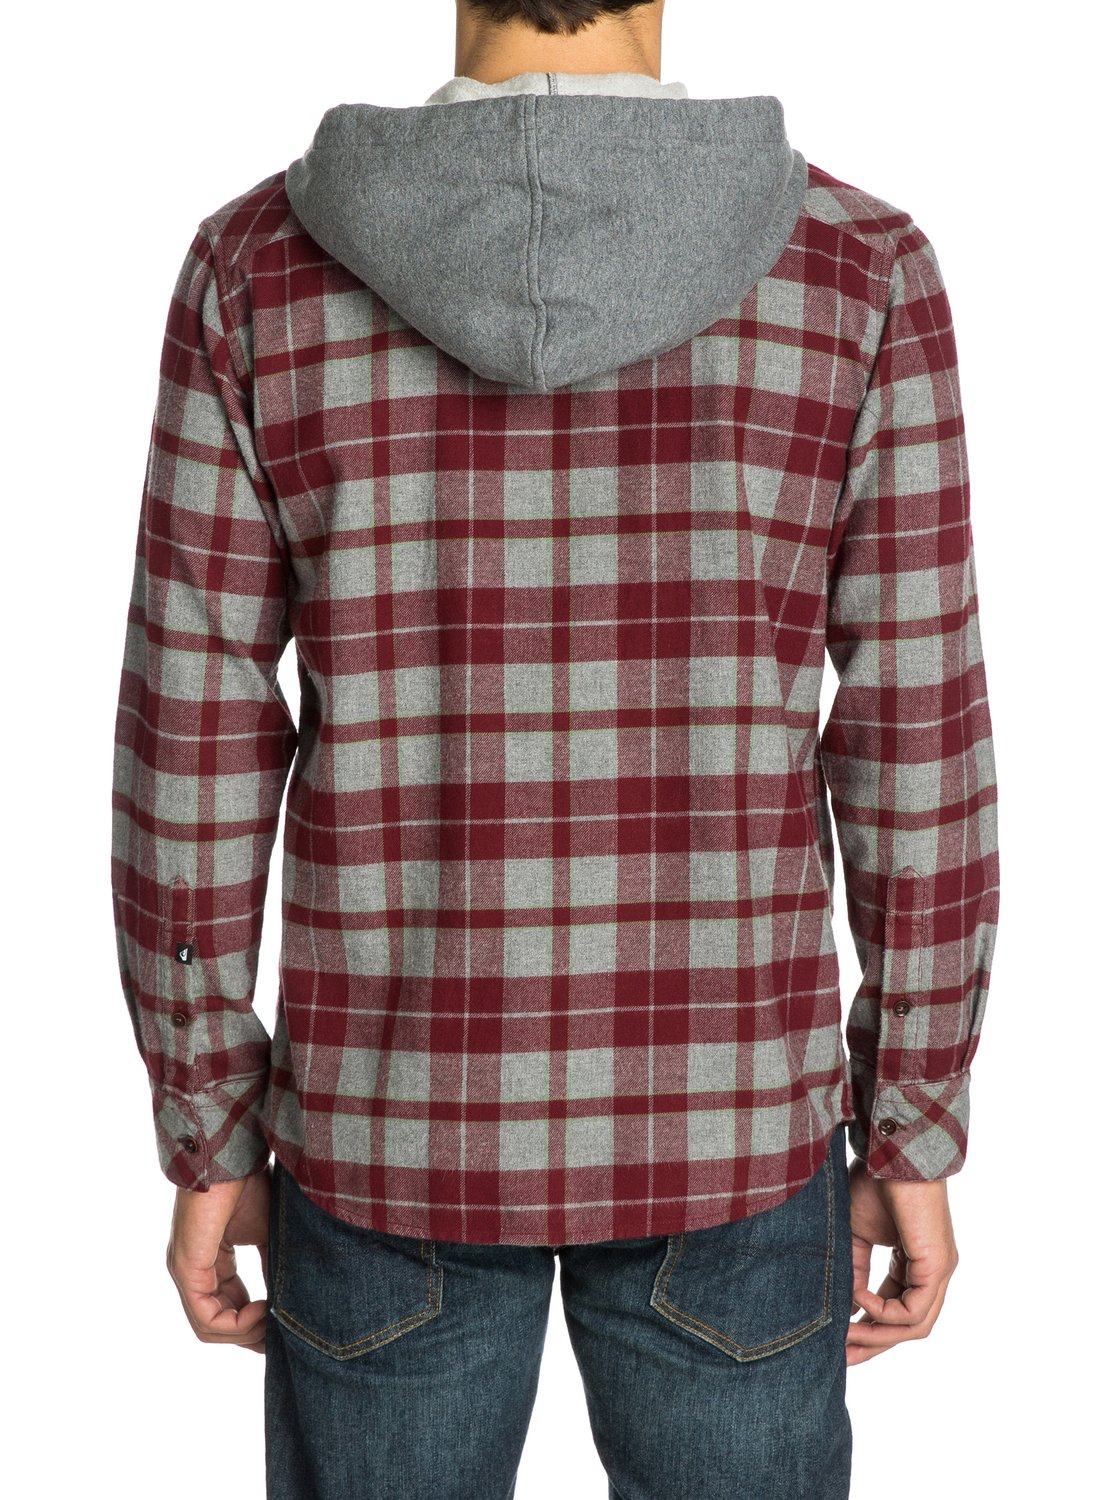 Find mens hooded flannels at ShopStyle. Shop the latest collection of mens hooded flannels from the most popular stores - all in one place.